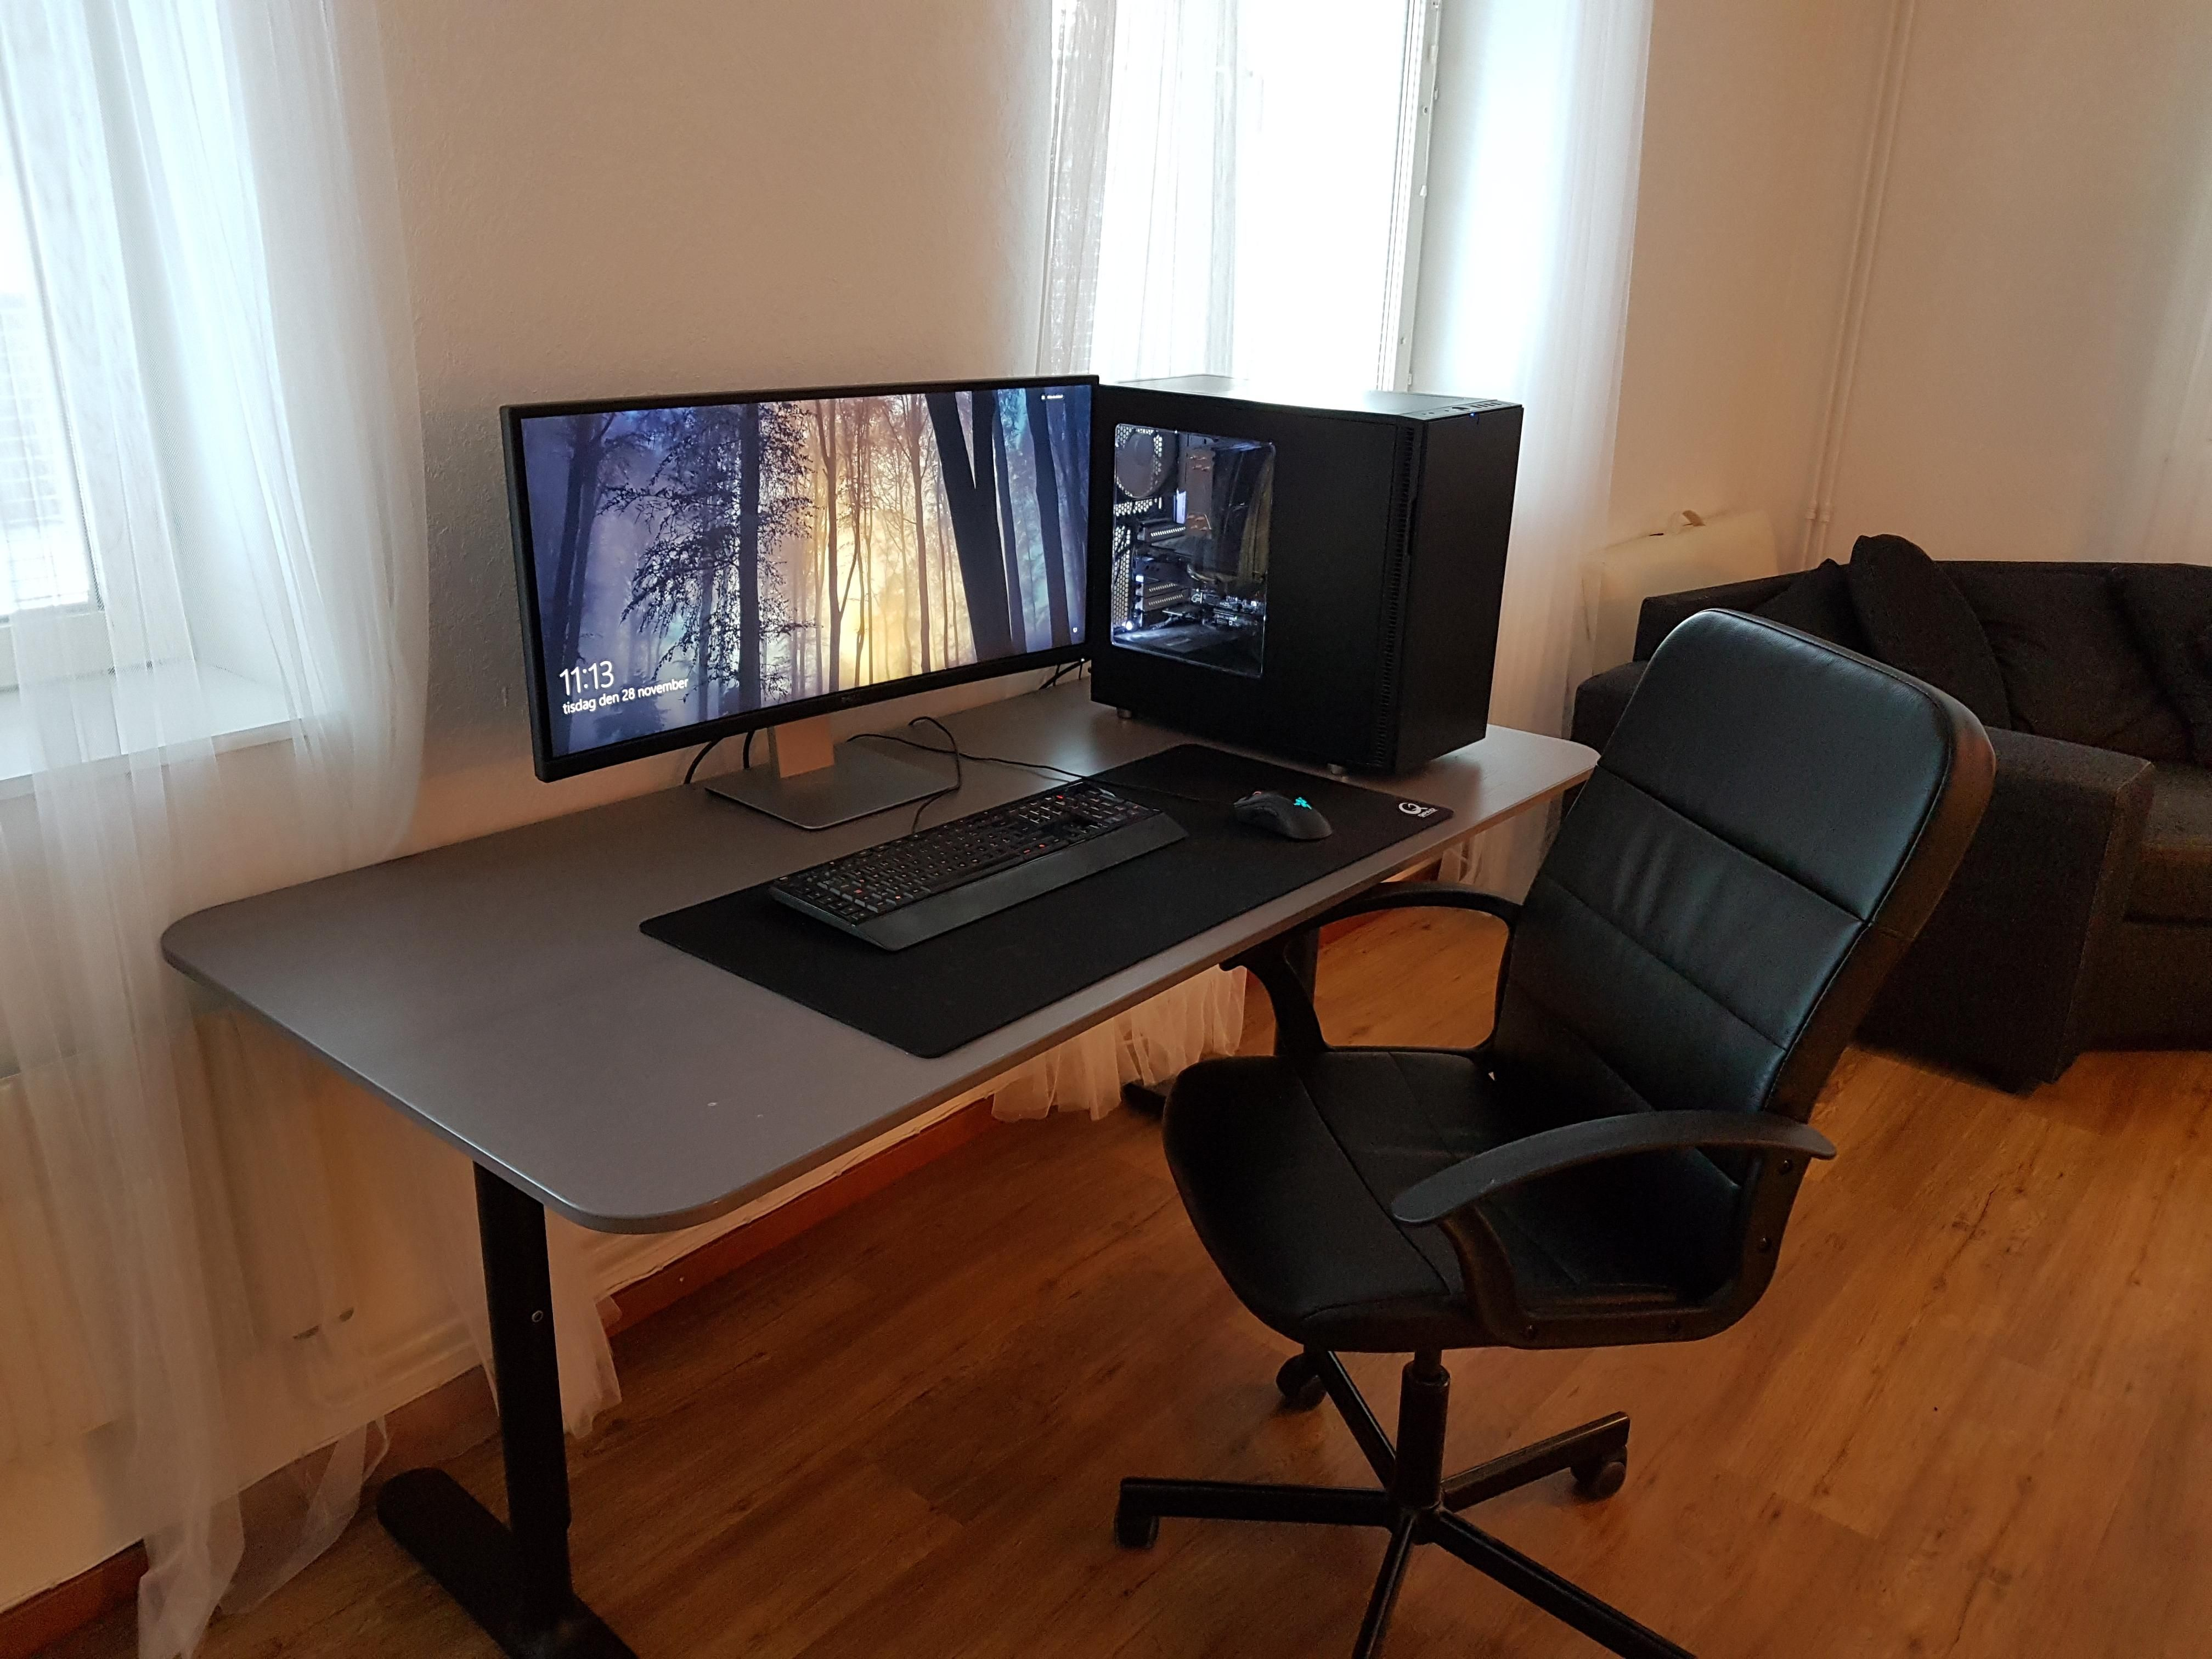 of tv monitors attic luxury reddit pc console two via gaming computer l and desk for station shaped user